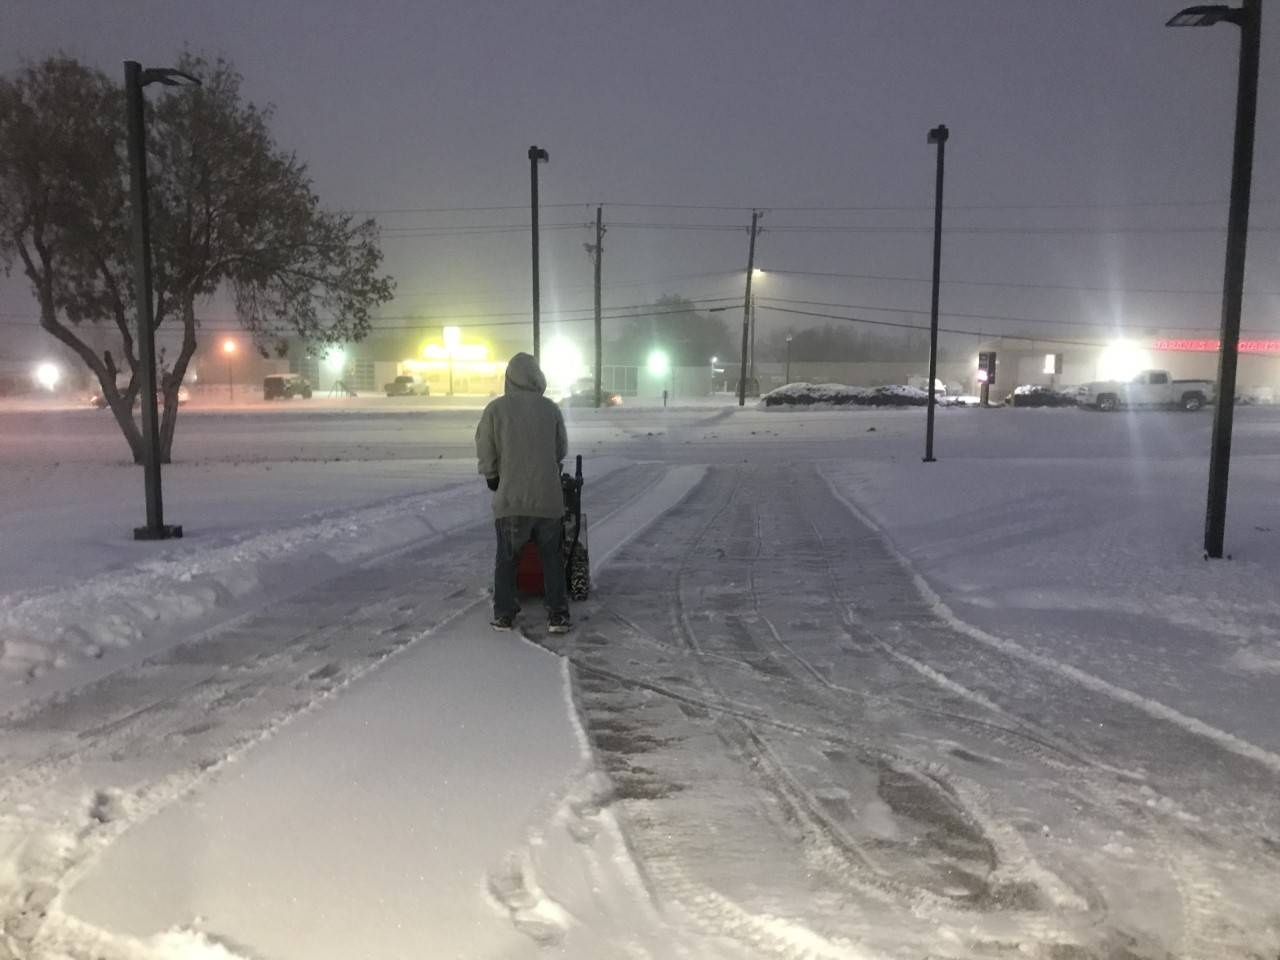 Thanks Mr. Steve for clearing a path for our students!